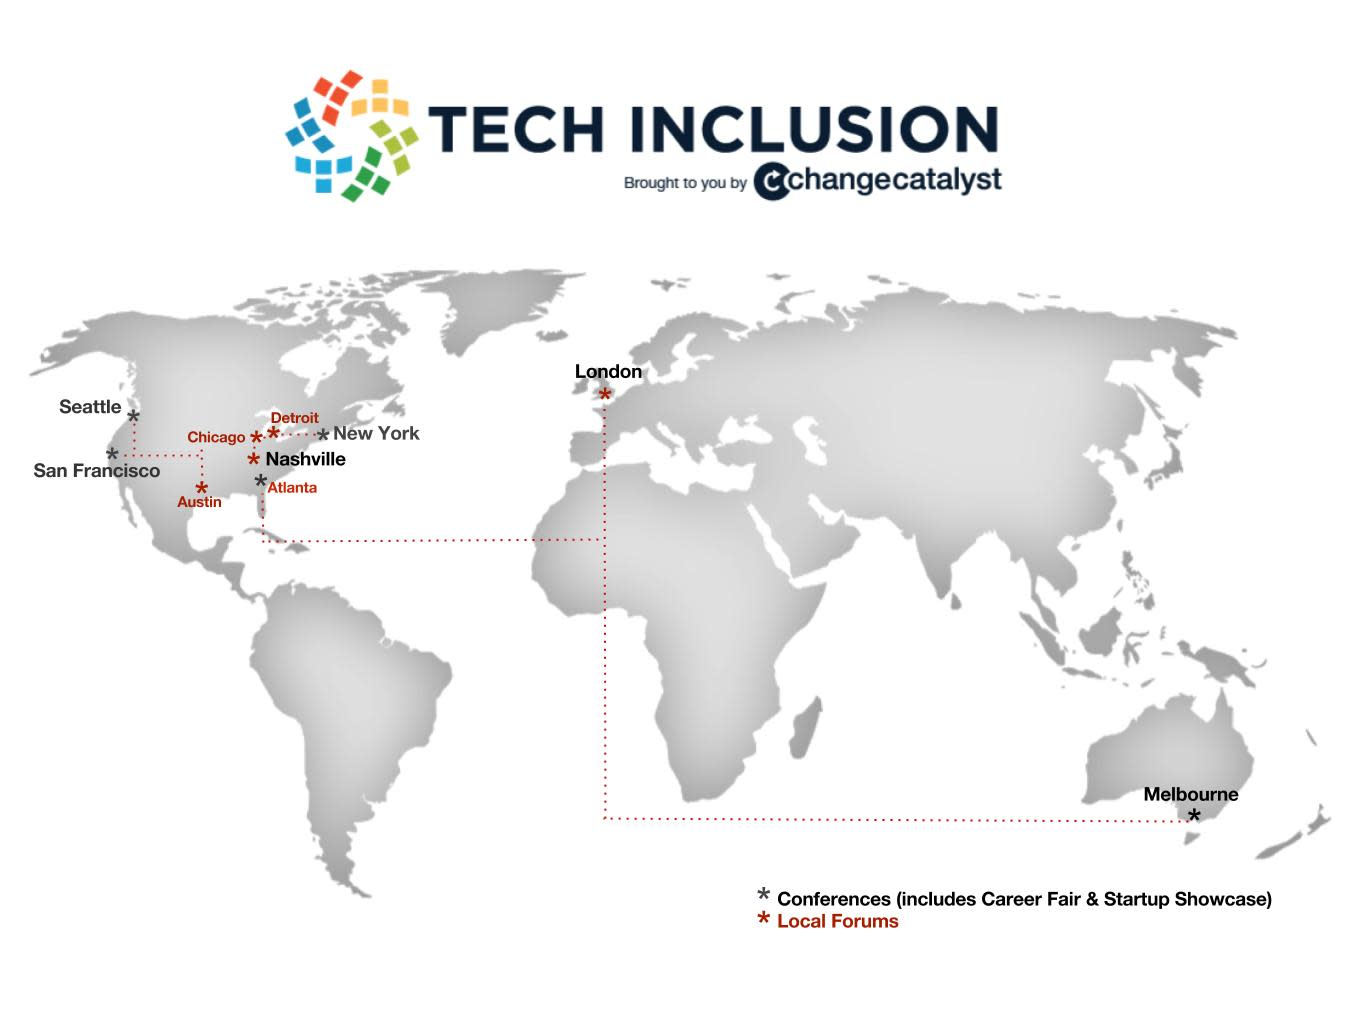 Tech Inclusion 2017 Journey - Foundation Partner Network with Change Catalyst